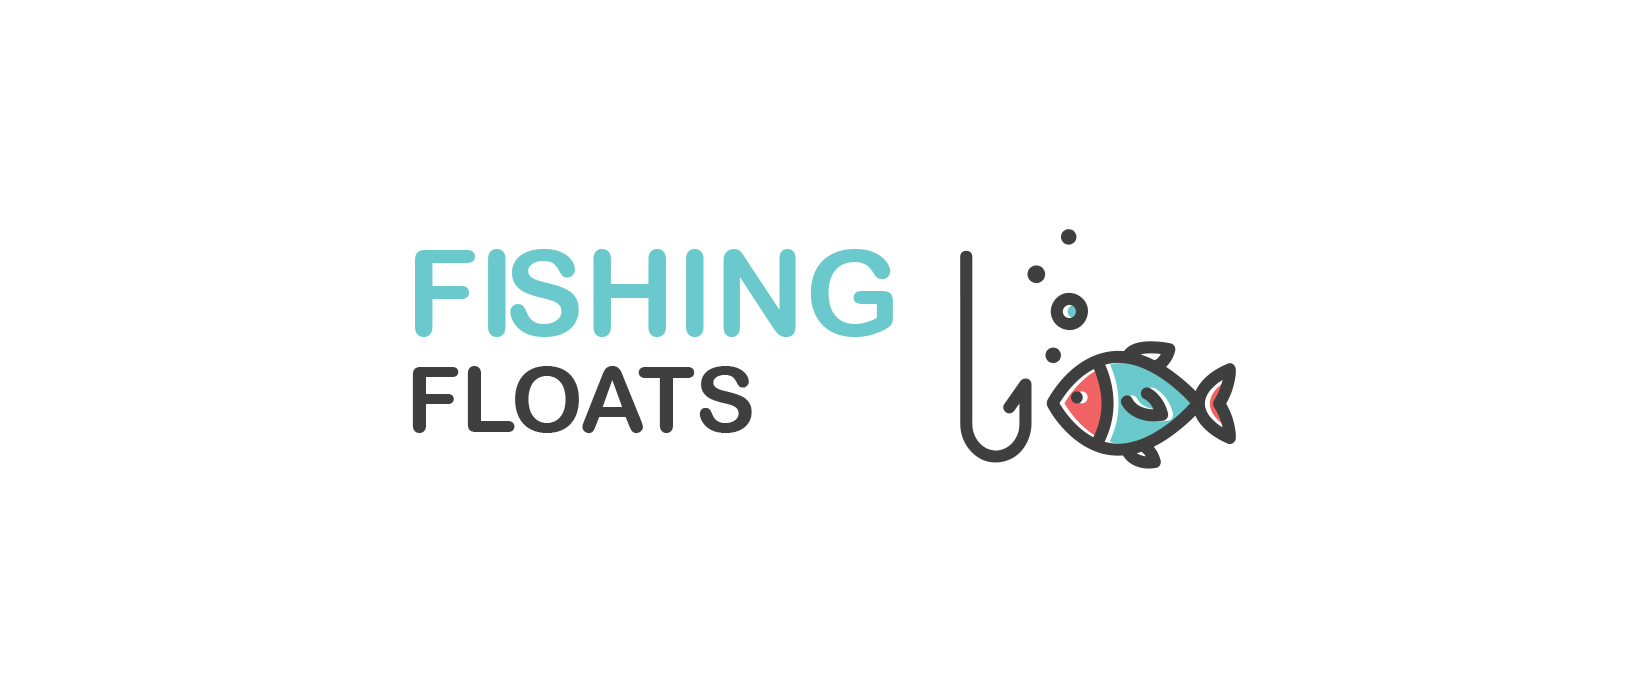 fishingfloats